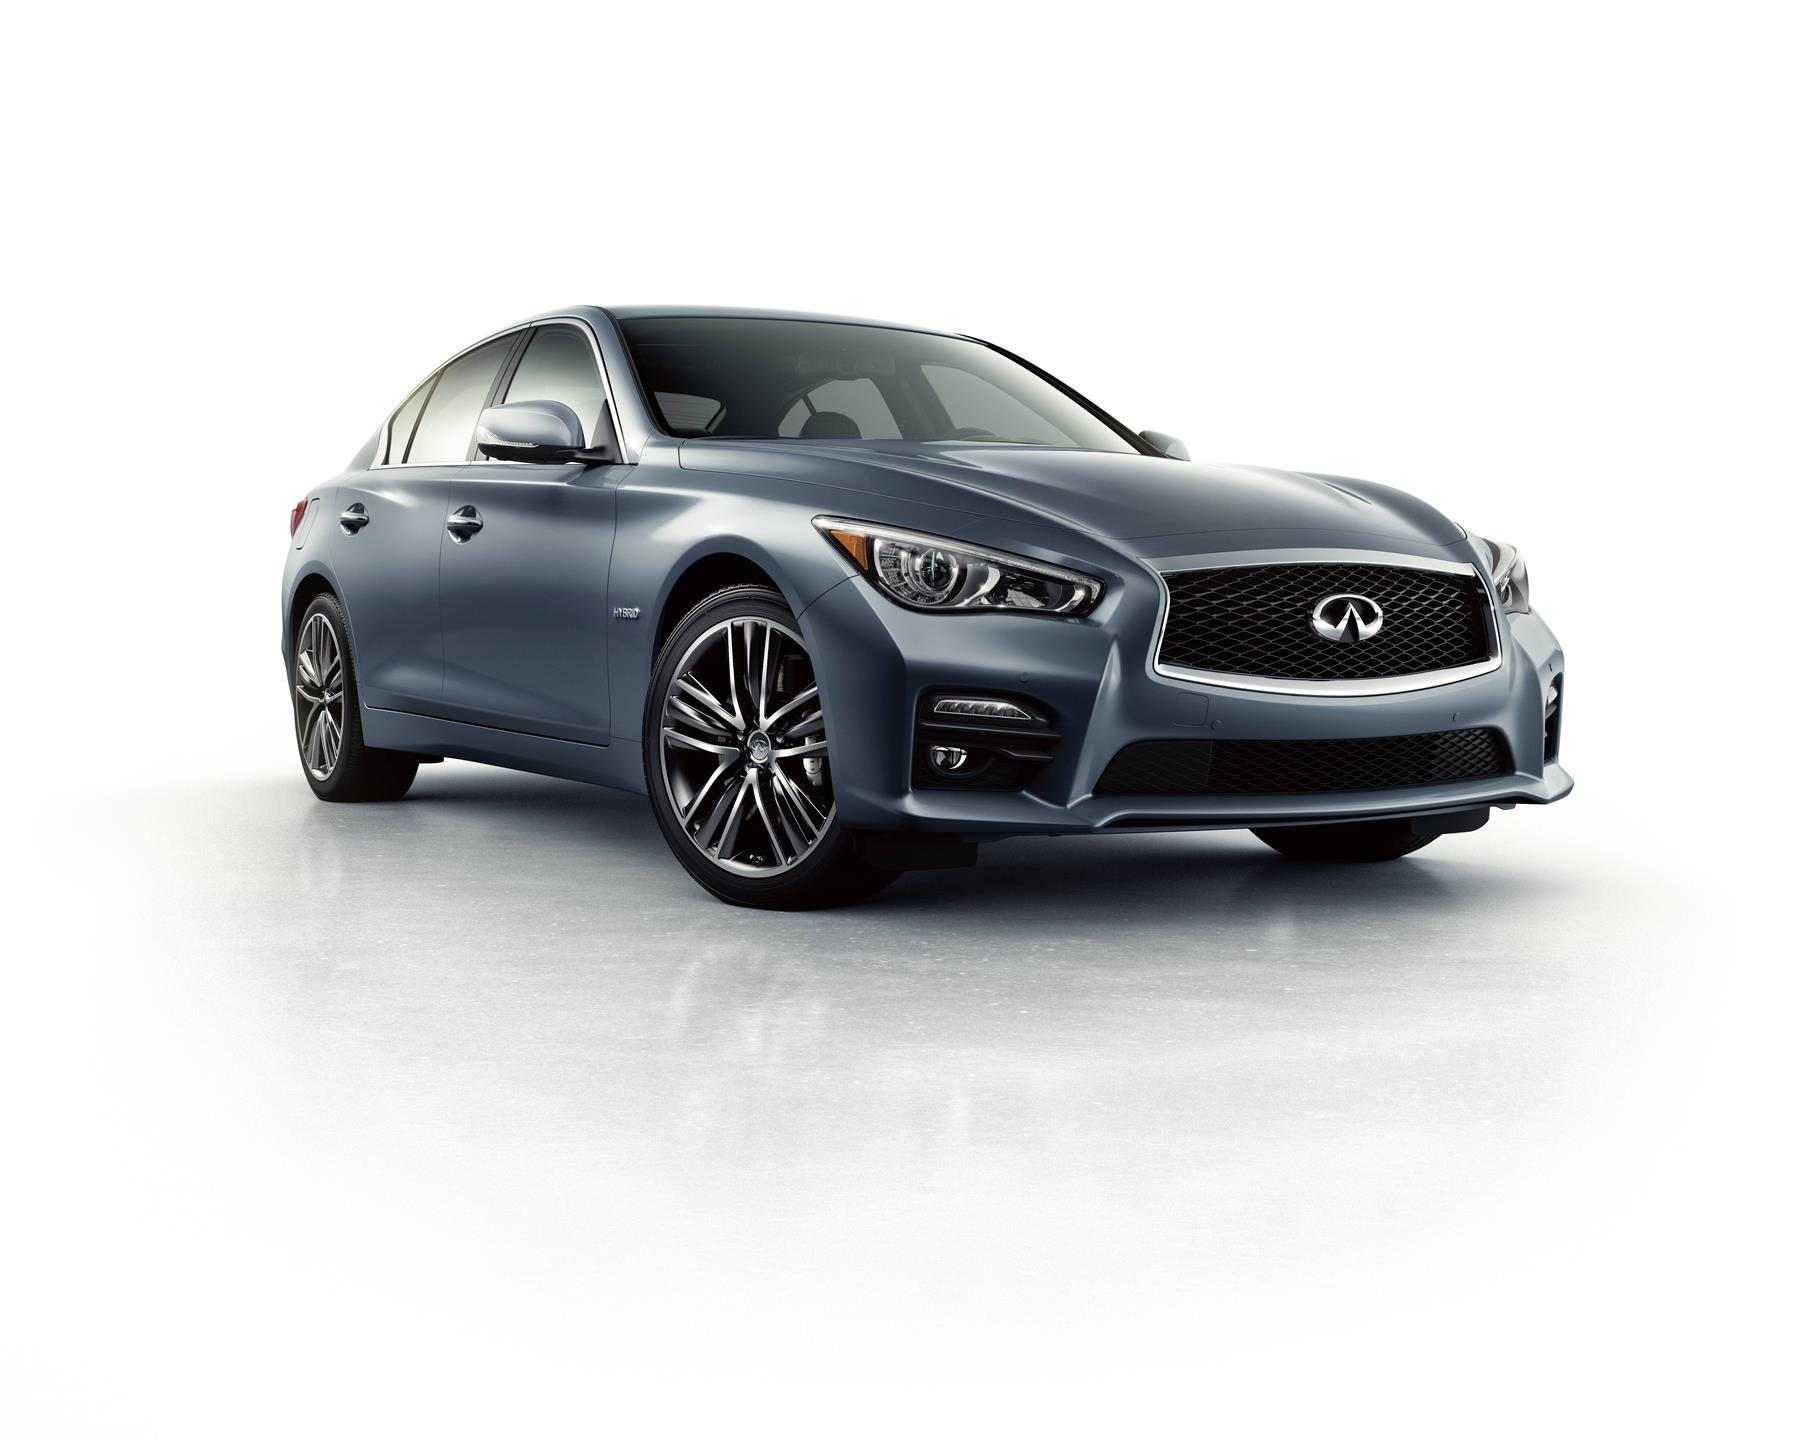 2015 infiniti q50. Black Bedroom Furniture Sets. Home Design Ideas